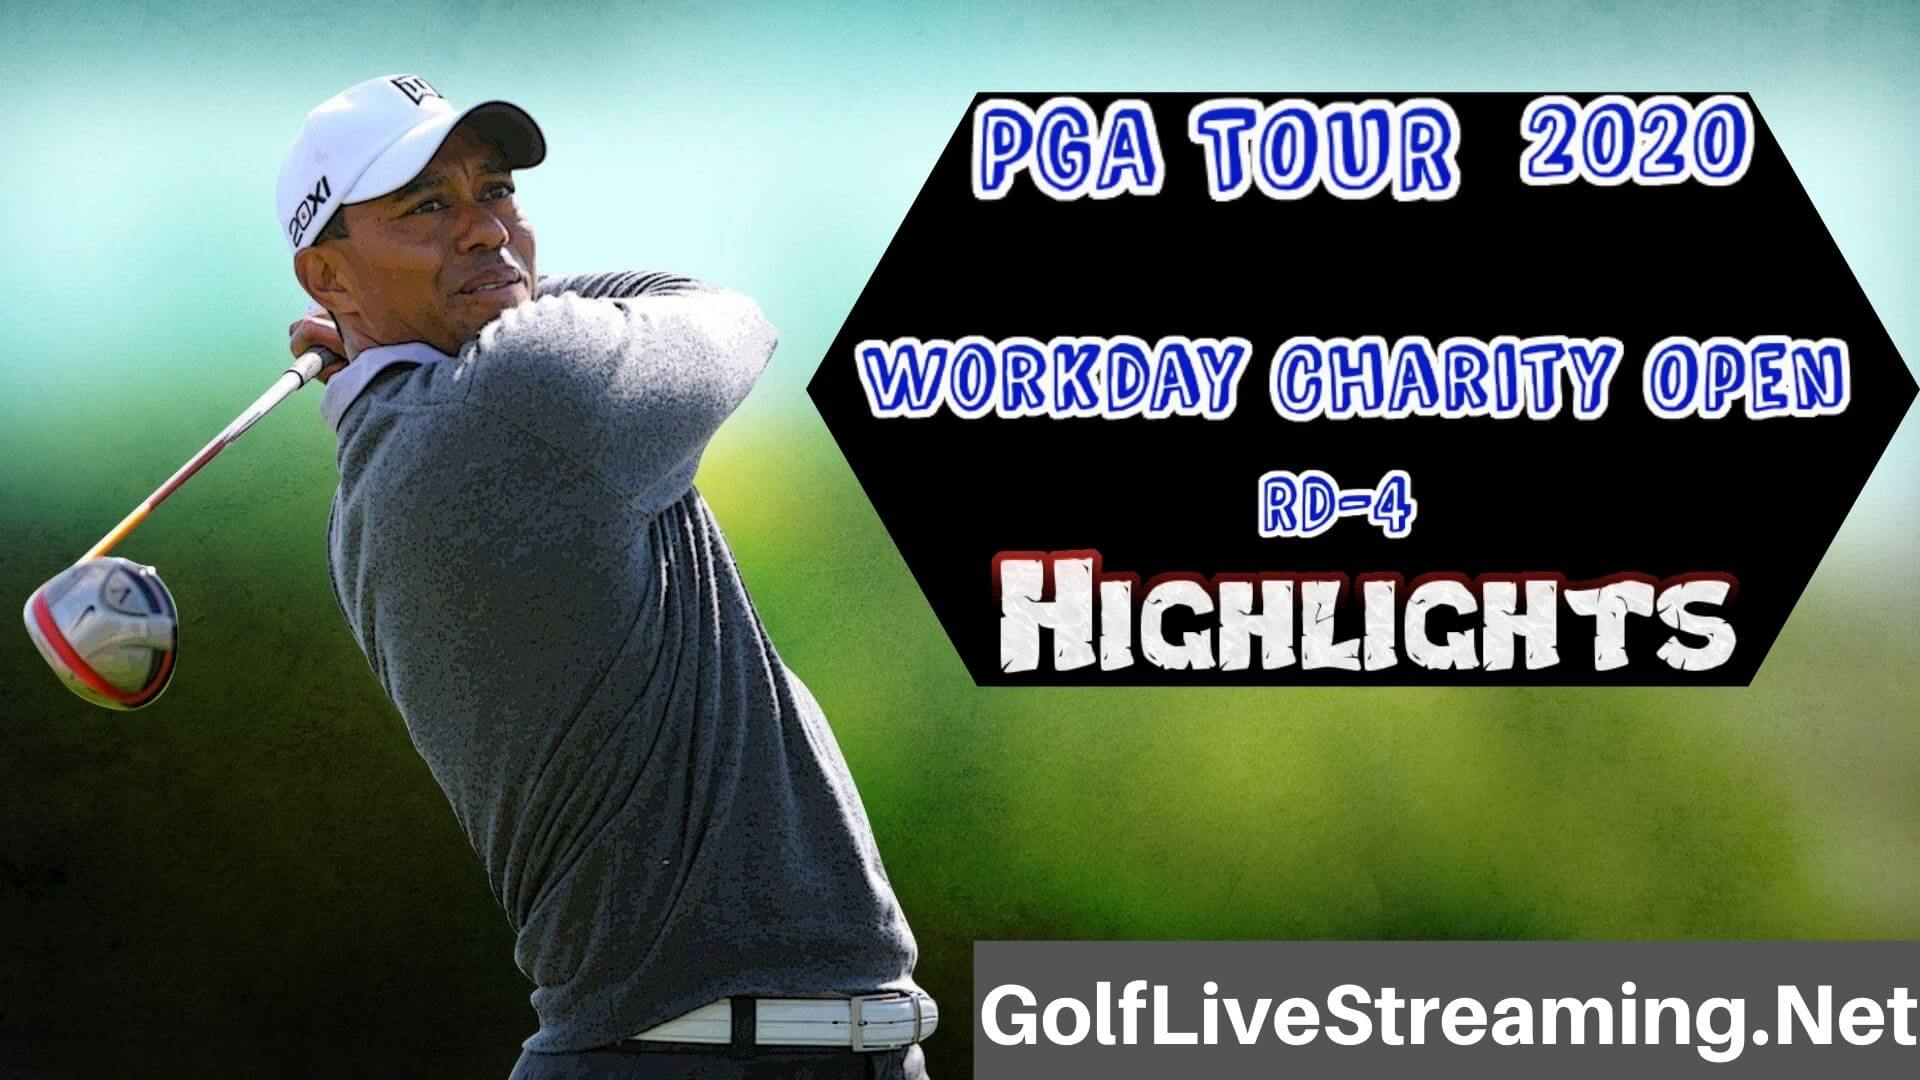 Workday Charity Open Rd 4 Highlights 2020 PGA TOUR